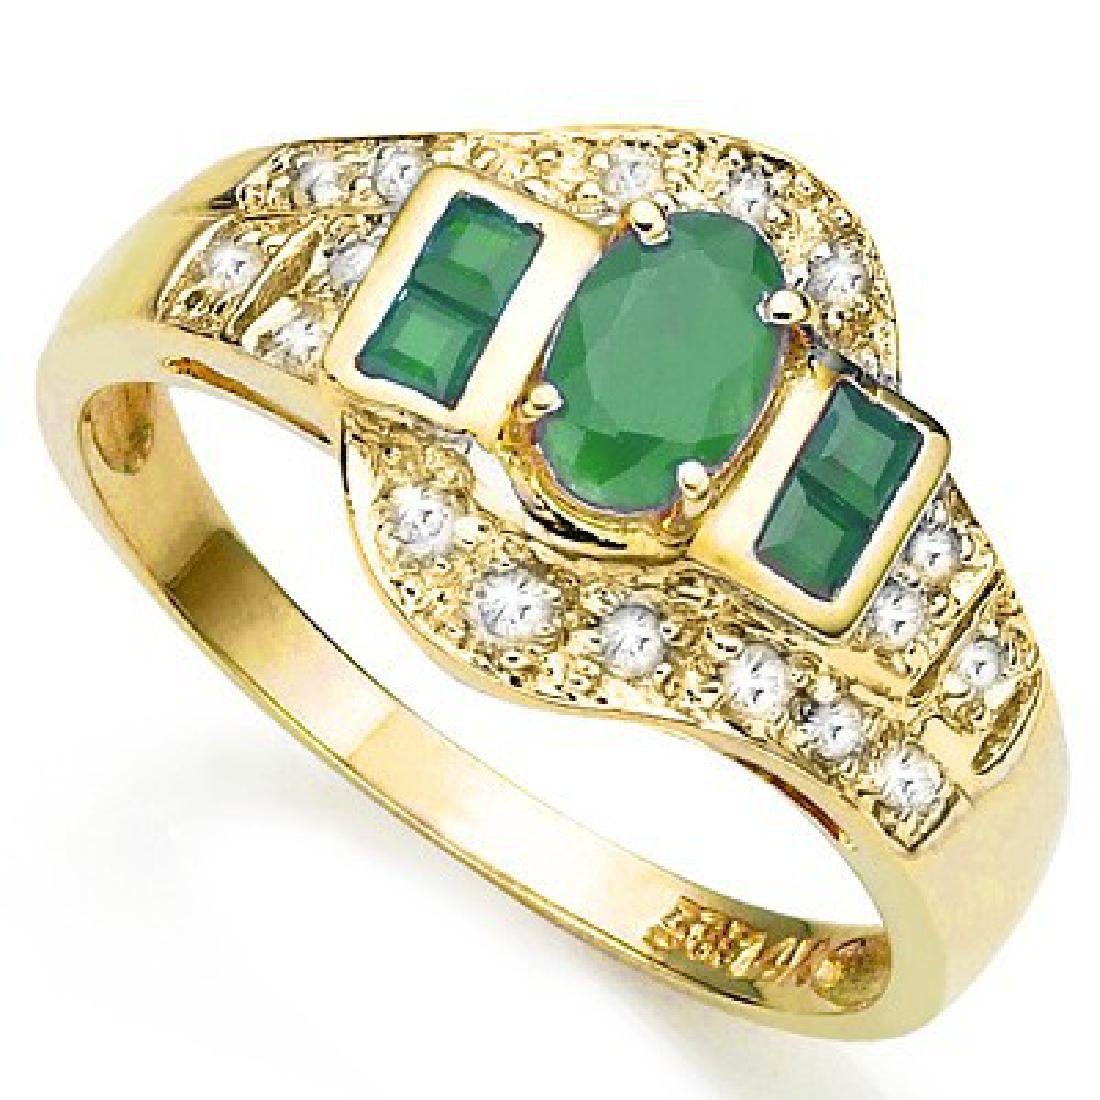 STUNNING 10K GOLD GENUINE EMERALD/DIAMOND RING